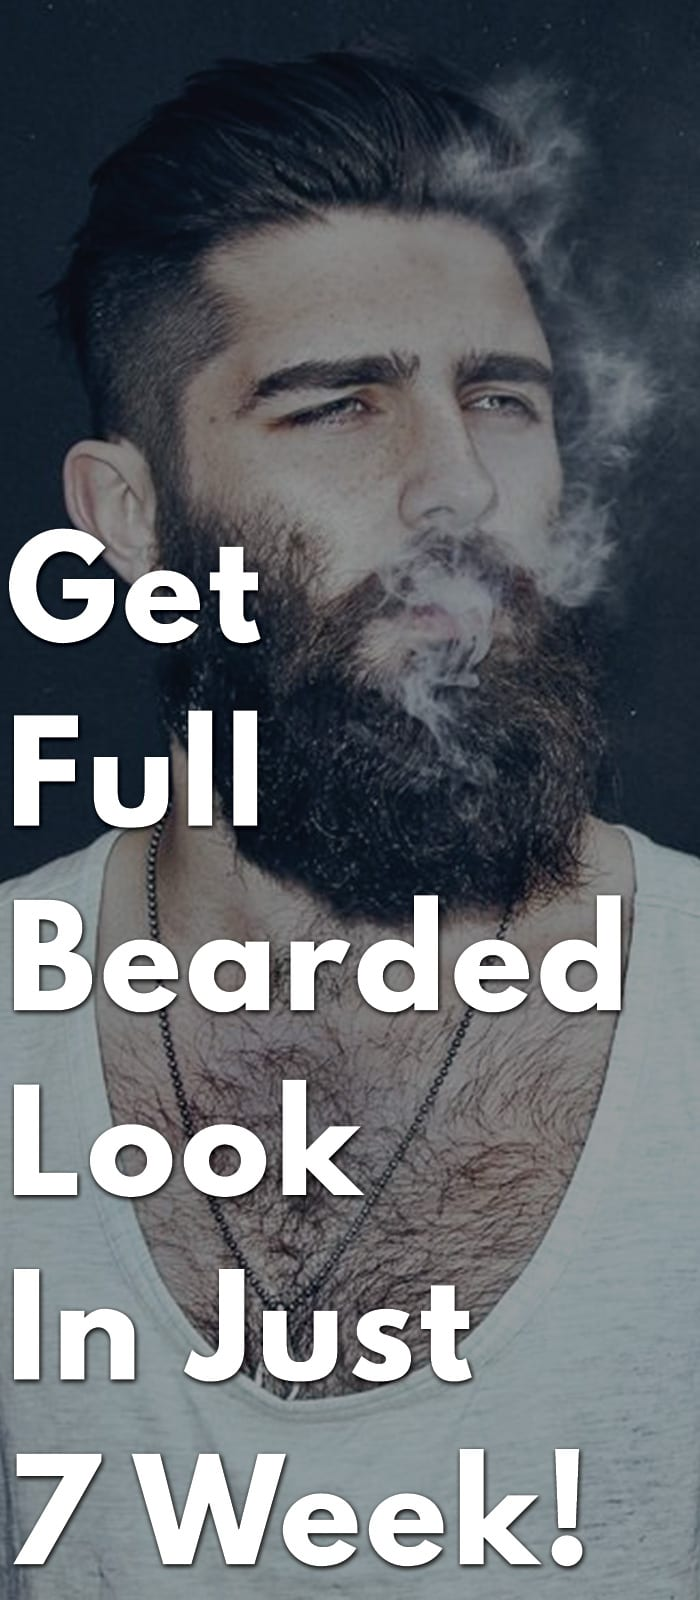 Get-Full-Bearded-Look-In-Just-7-Week!